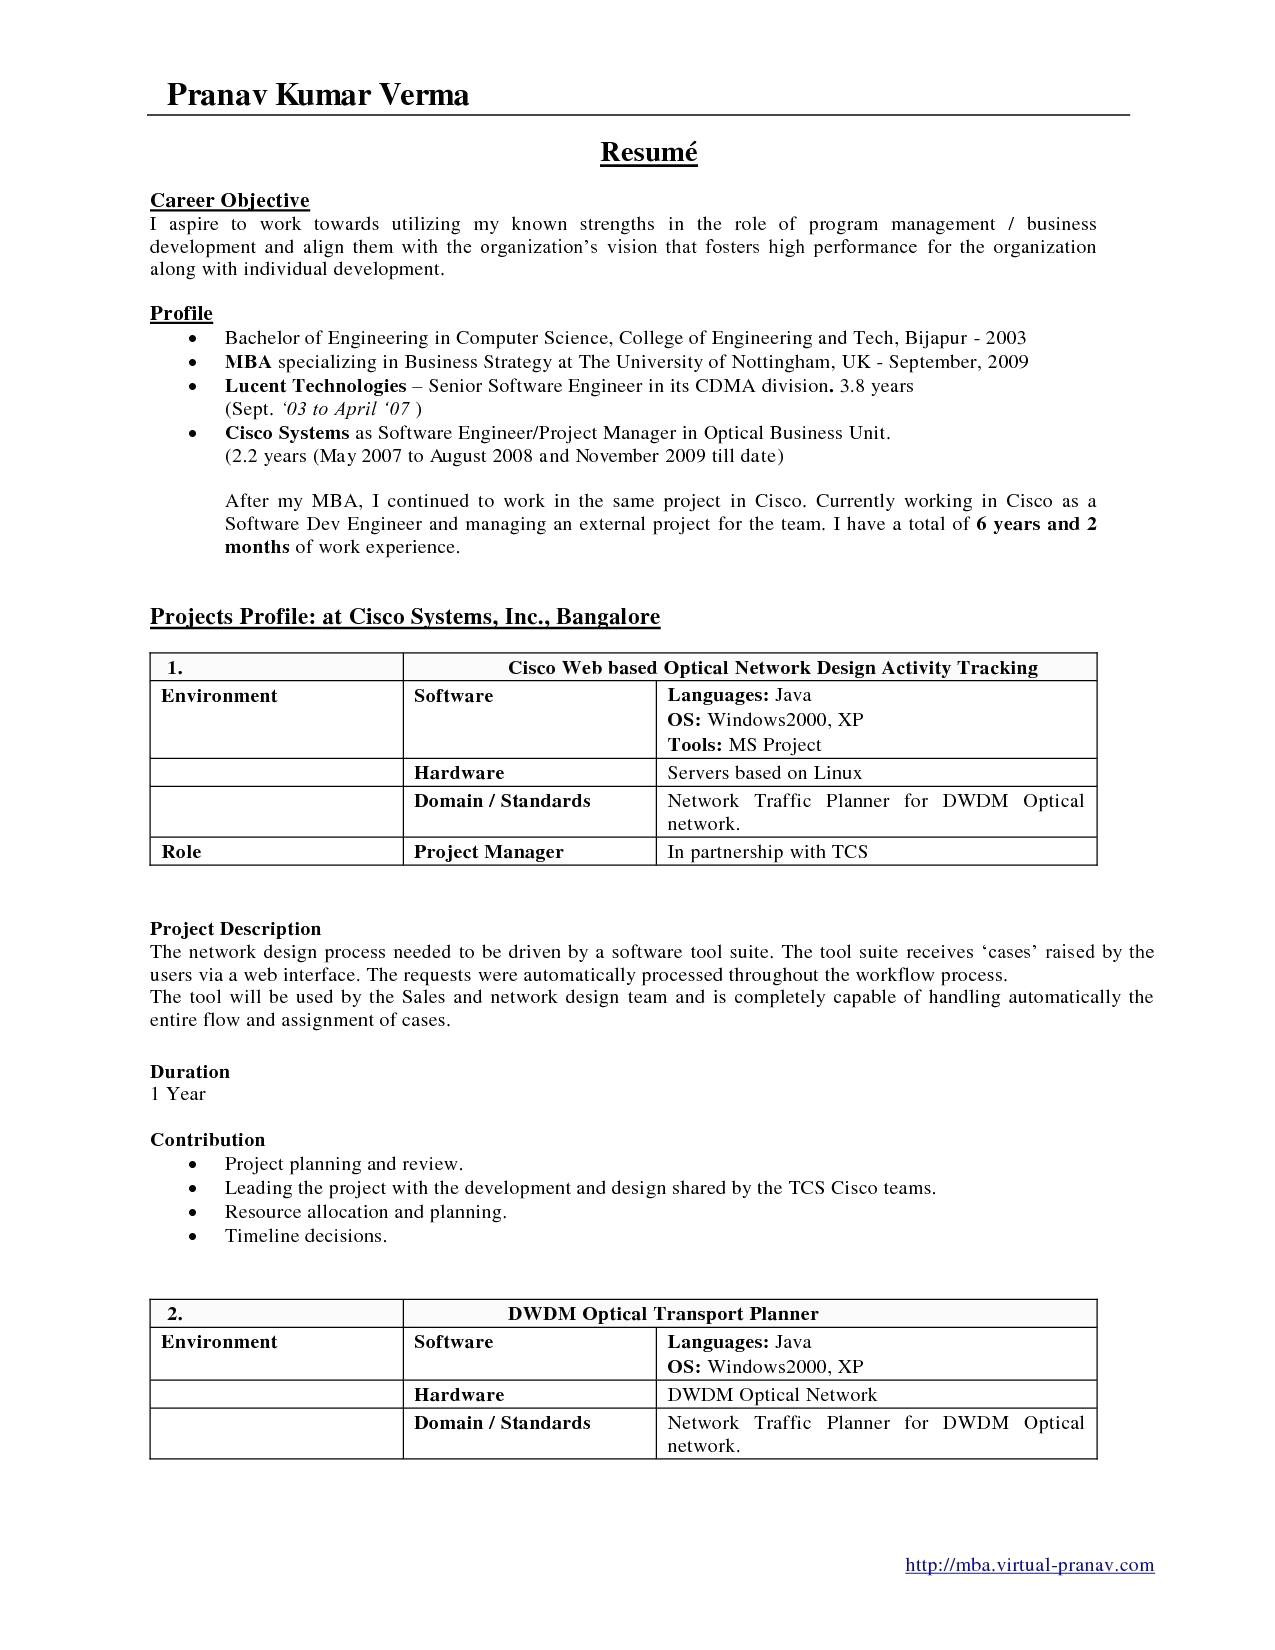 sample resume for 2 years experienced java developer best of resume software engineer with 2 years experience 14 unique